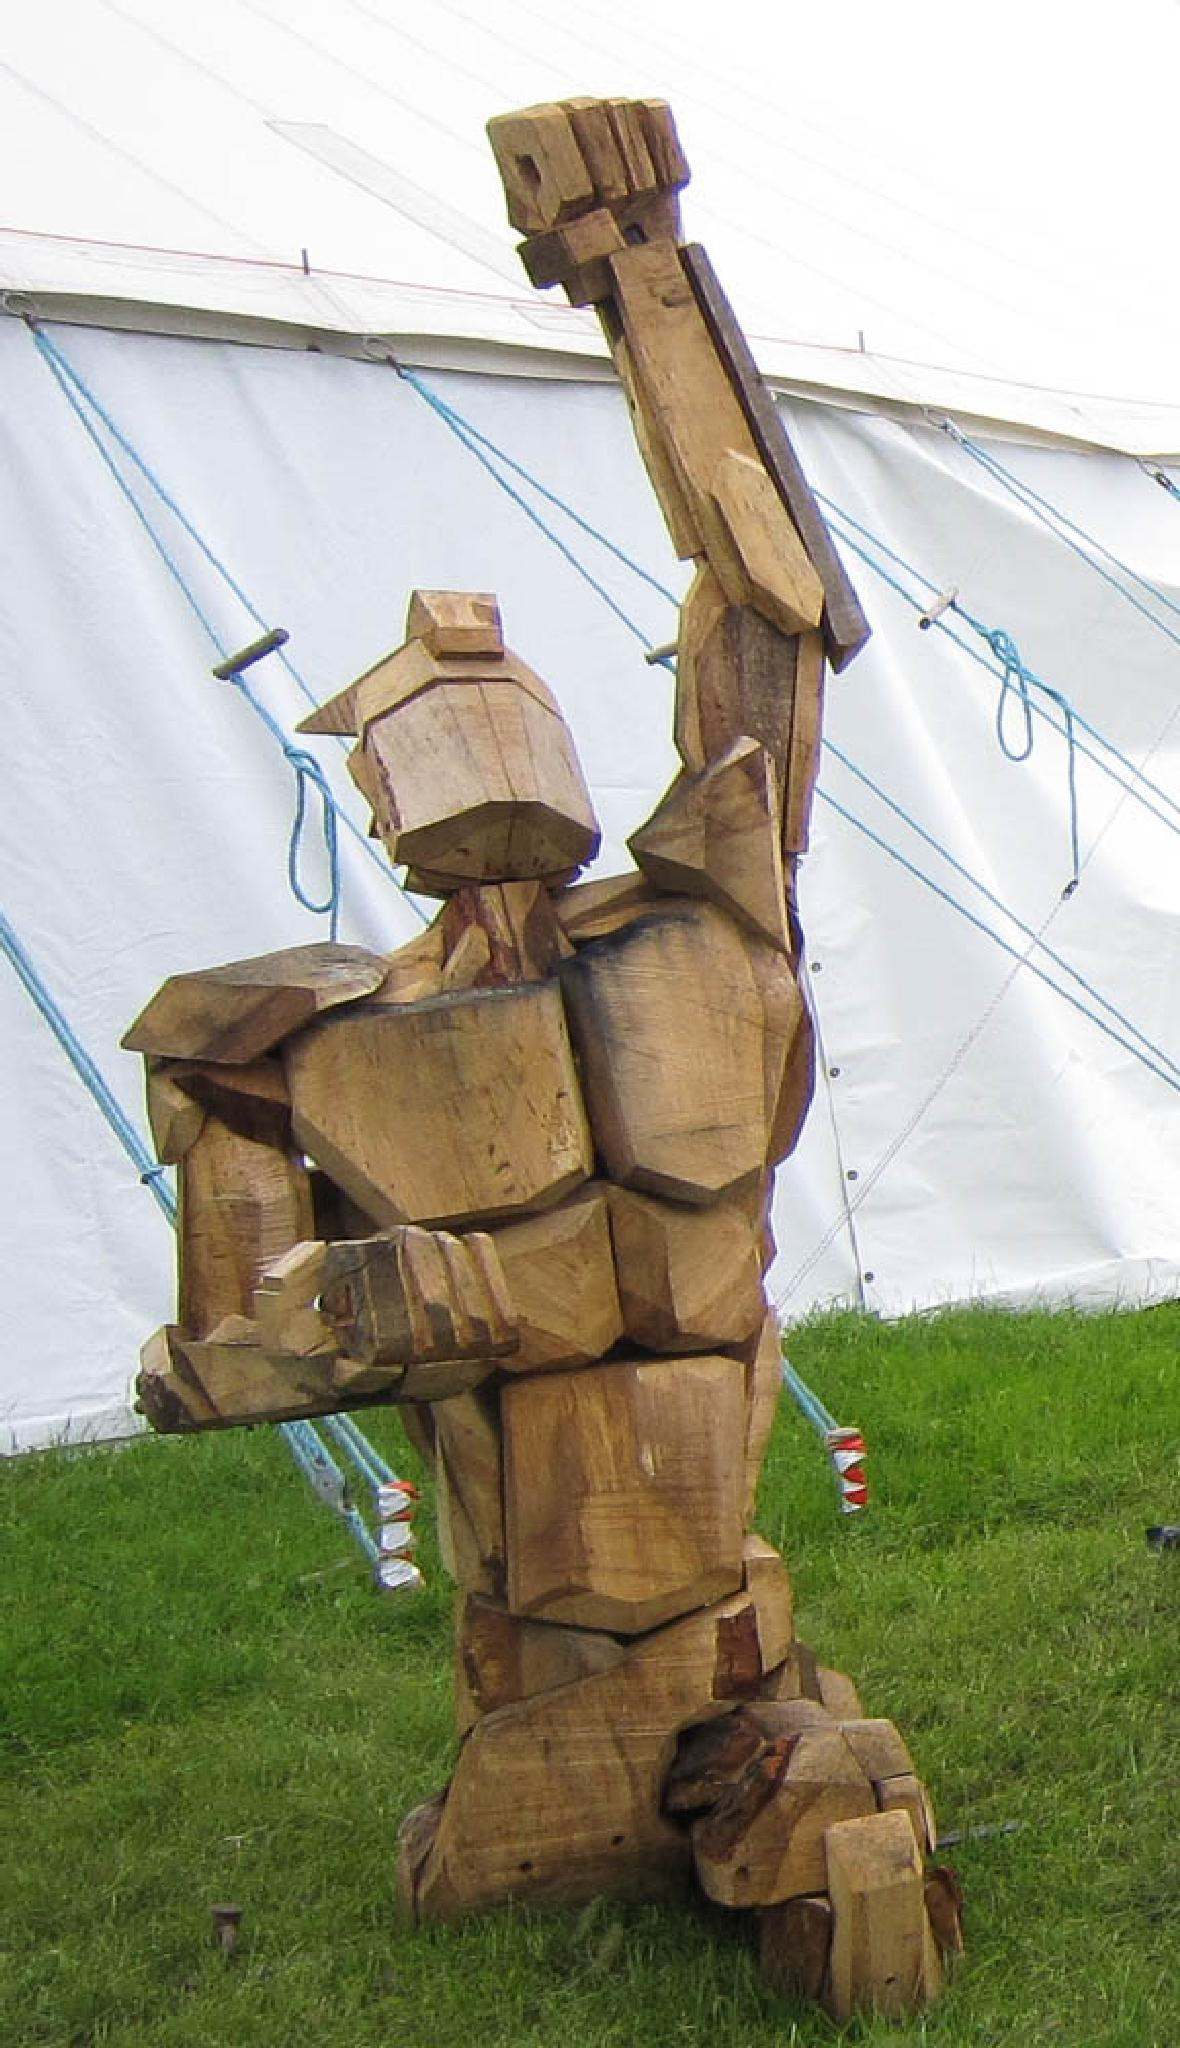 Wooden man sculpture at Art in Action, Waterperry Gardens, nr Oxford by Scottie